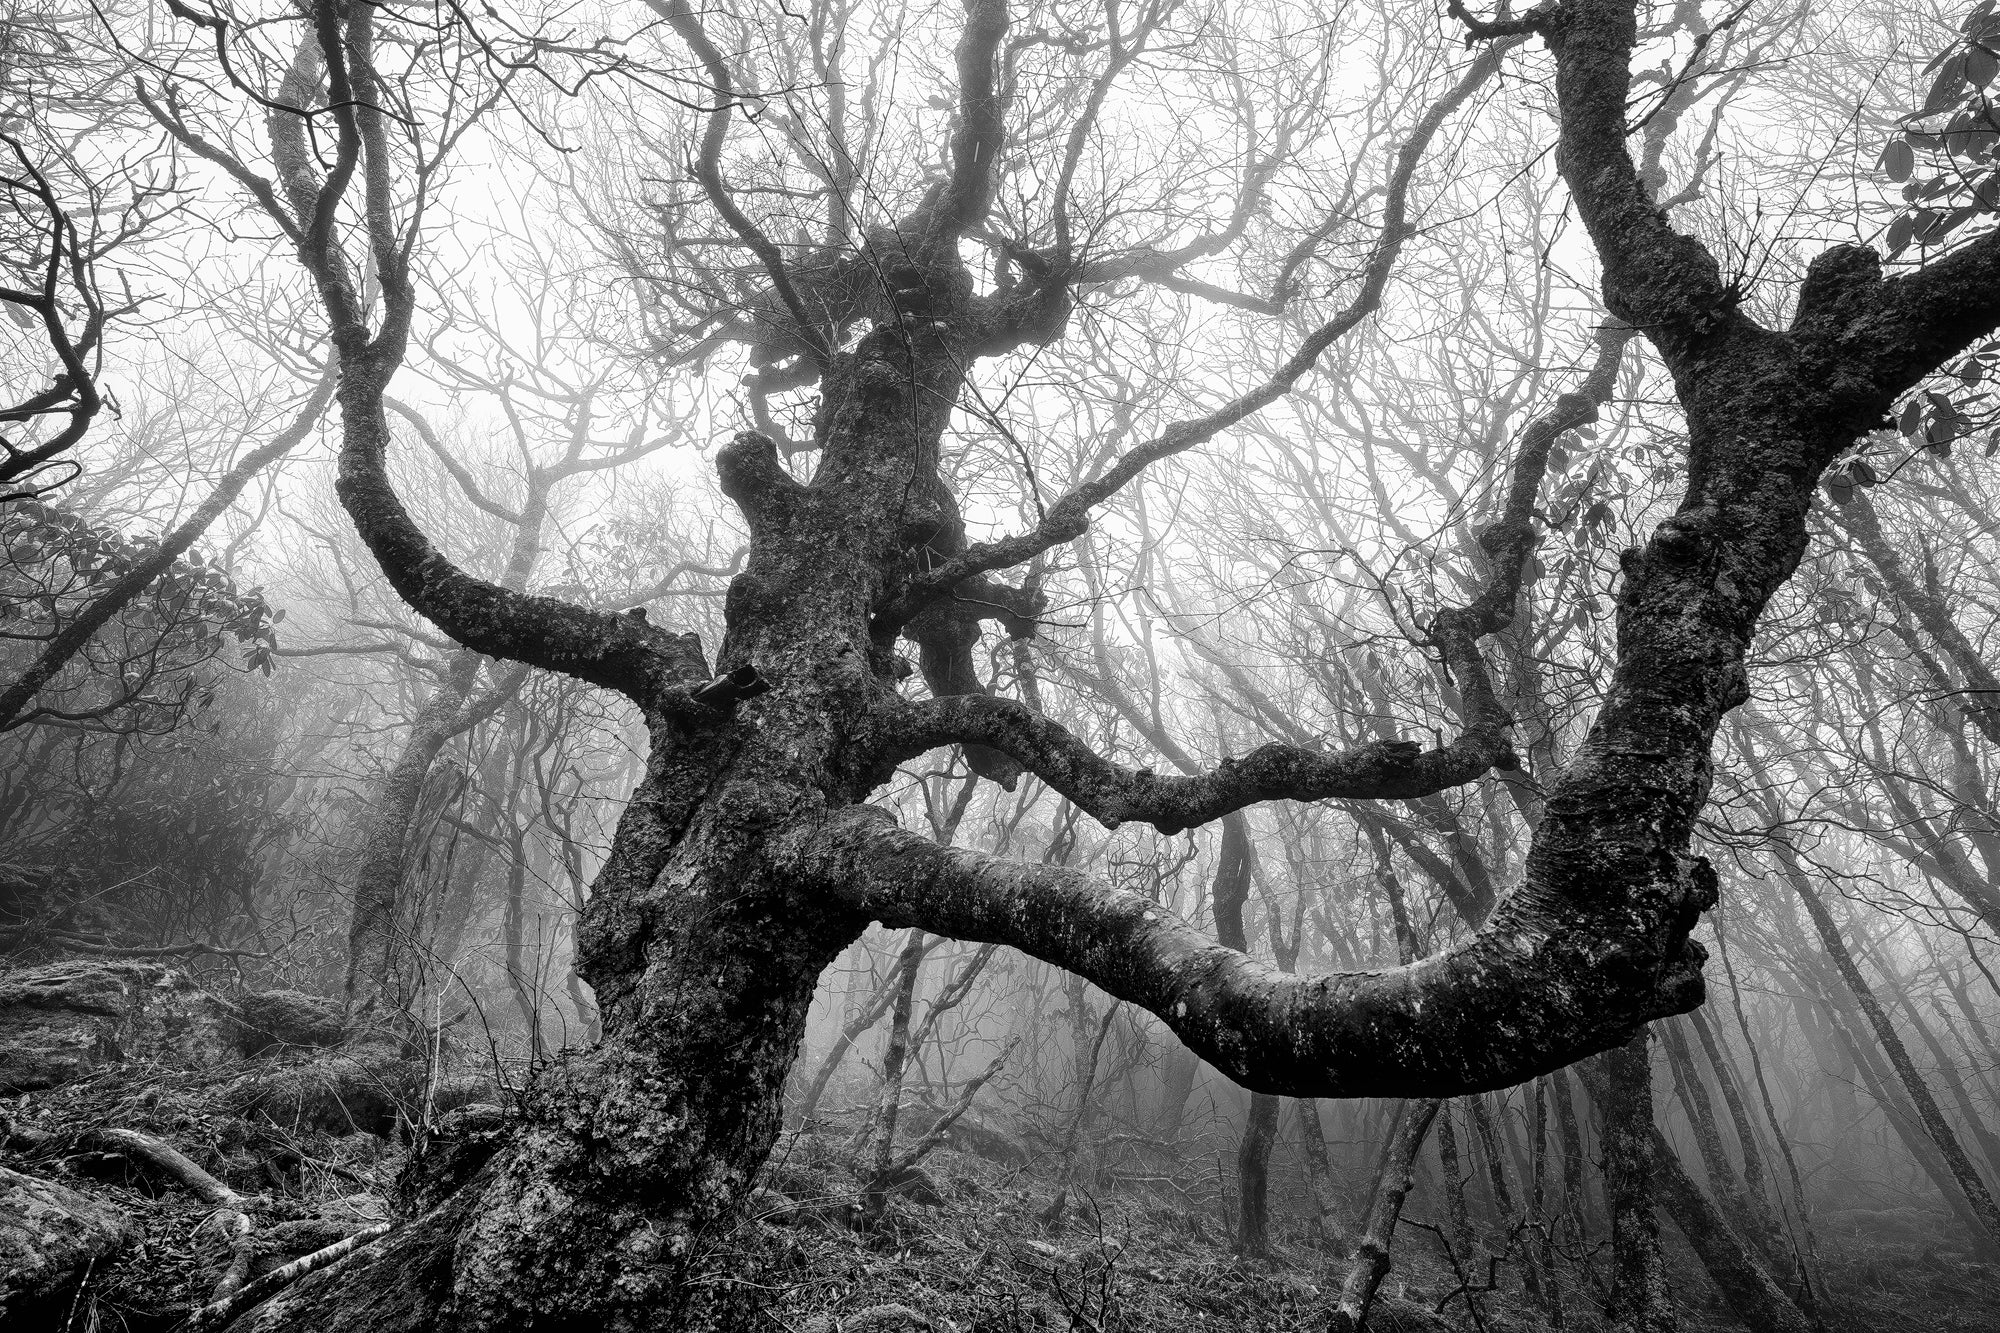 Gnarly Old Tree in the Fog - Black and white landscape photograph by Keith Dotson. Click to buy a fine art print.